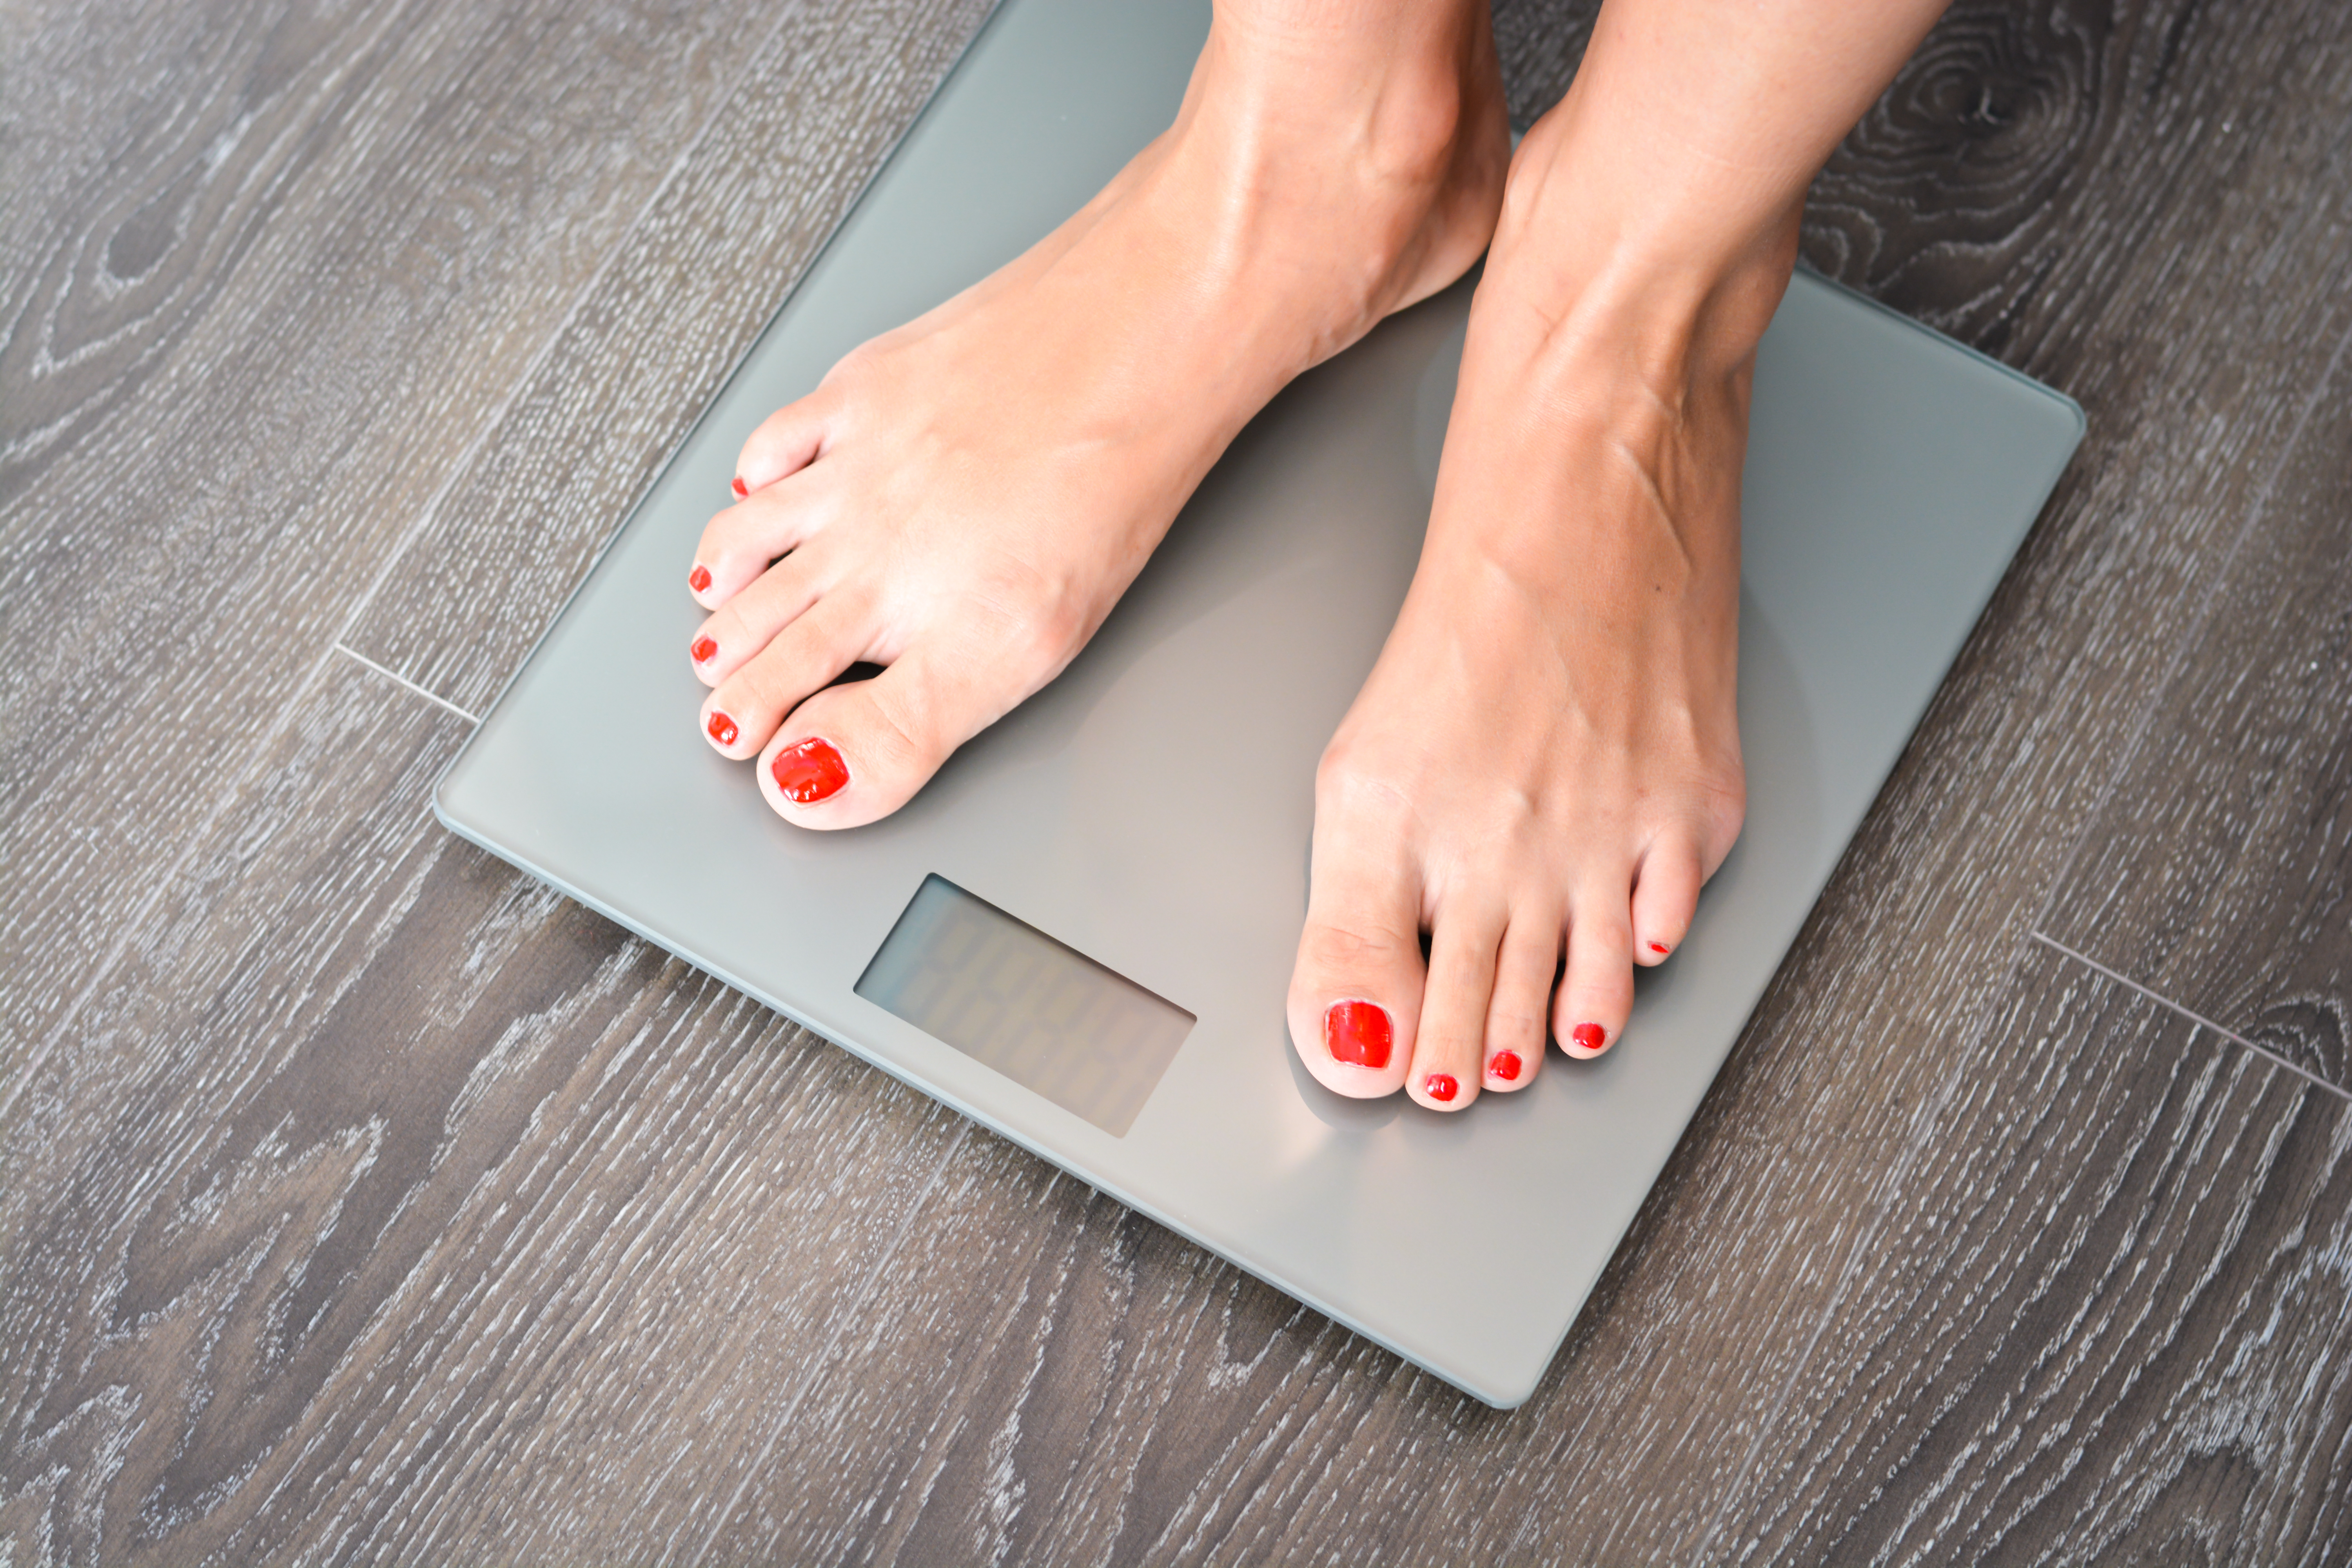 Woman's feet on weighing scales